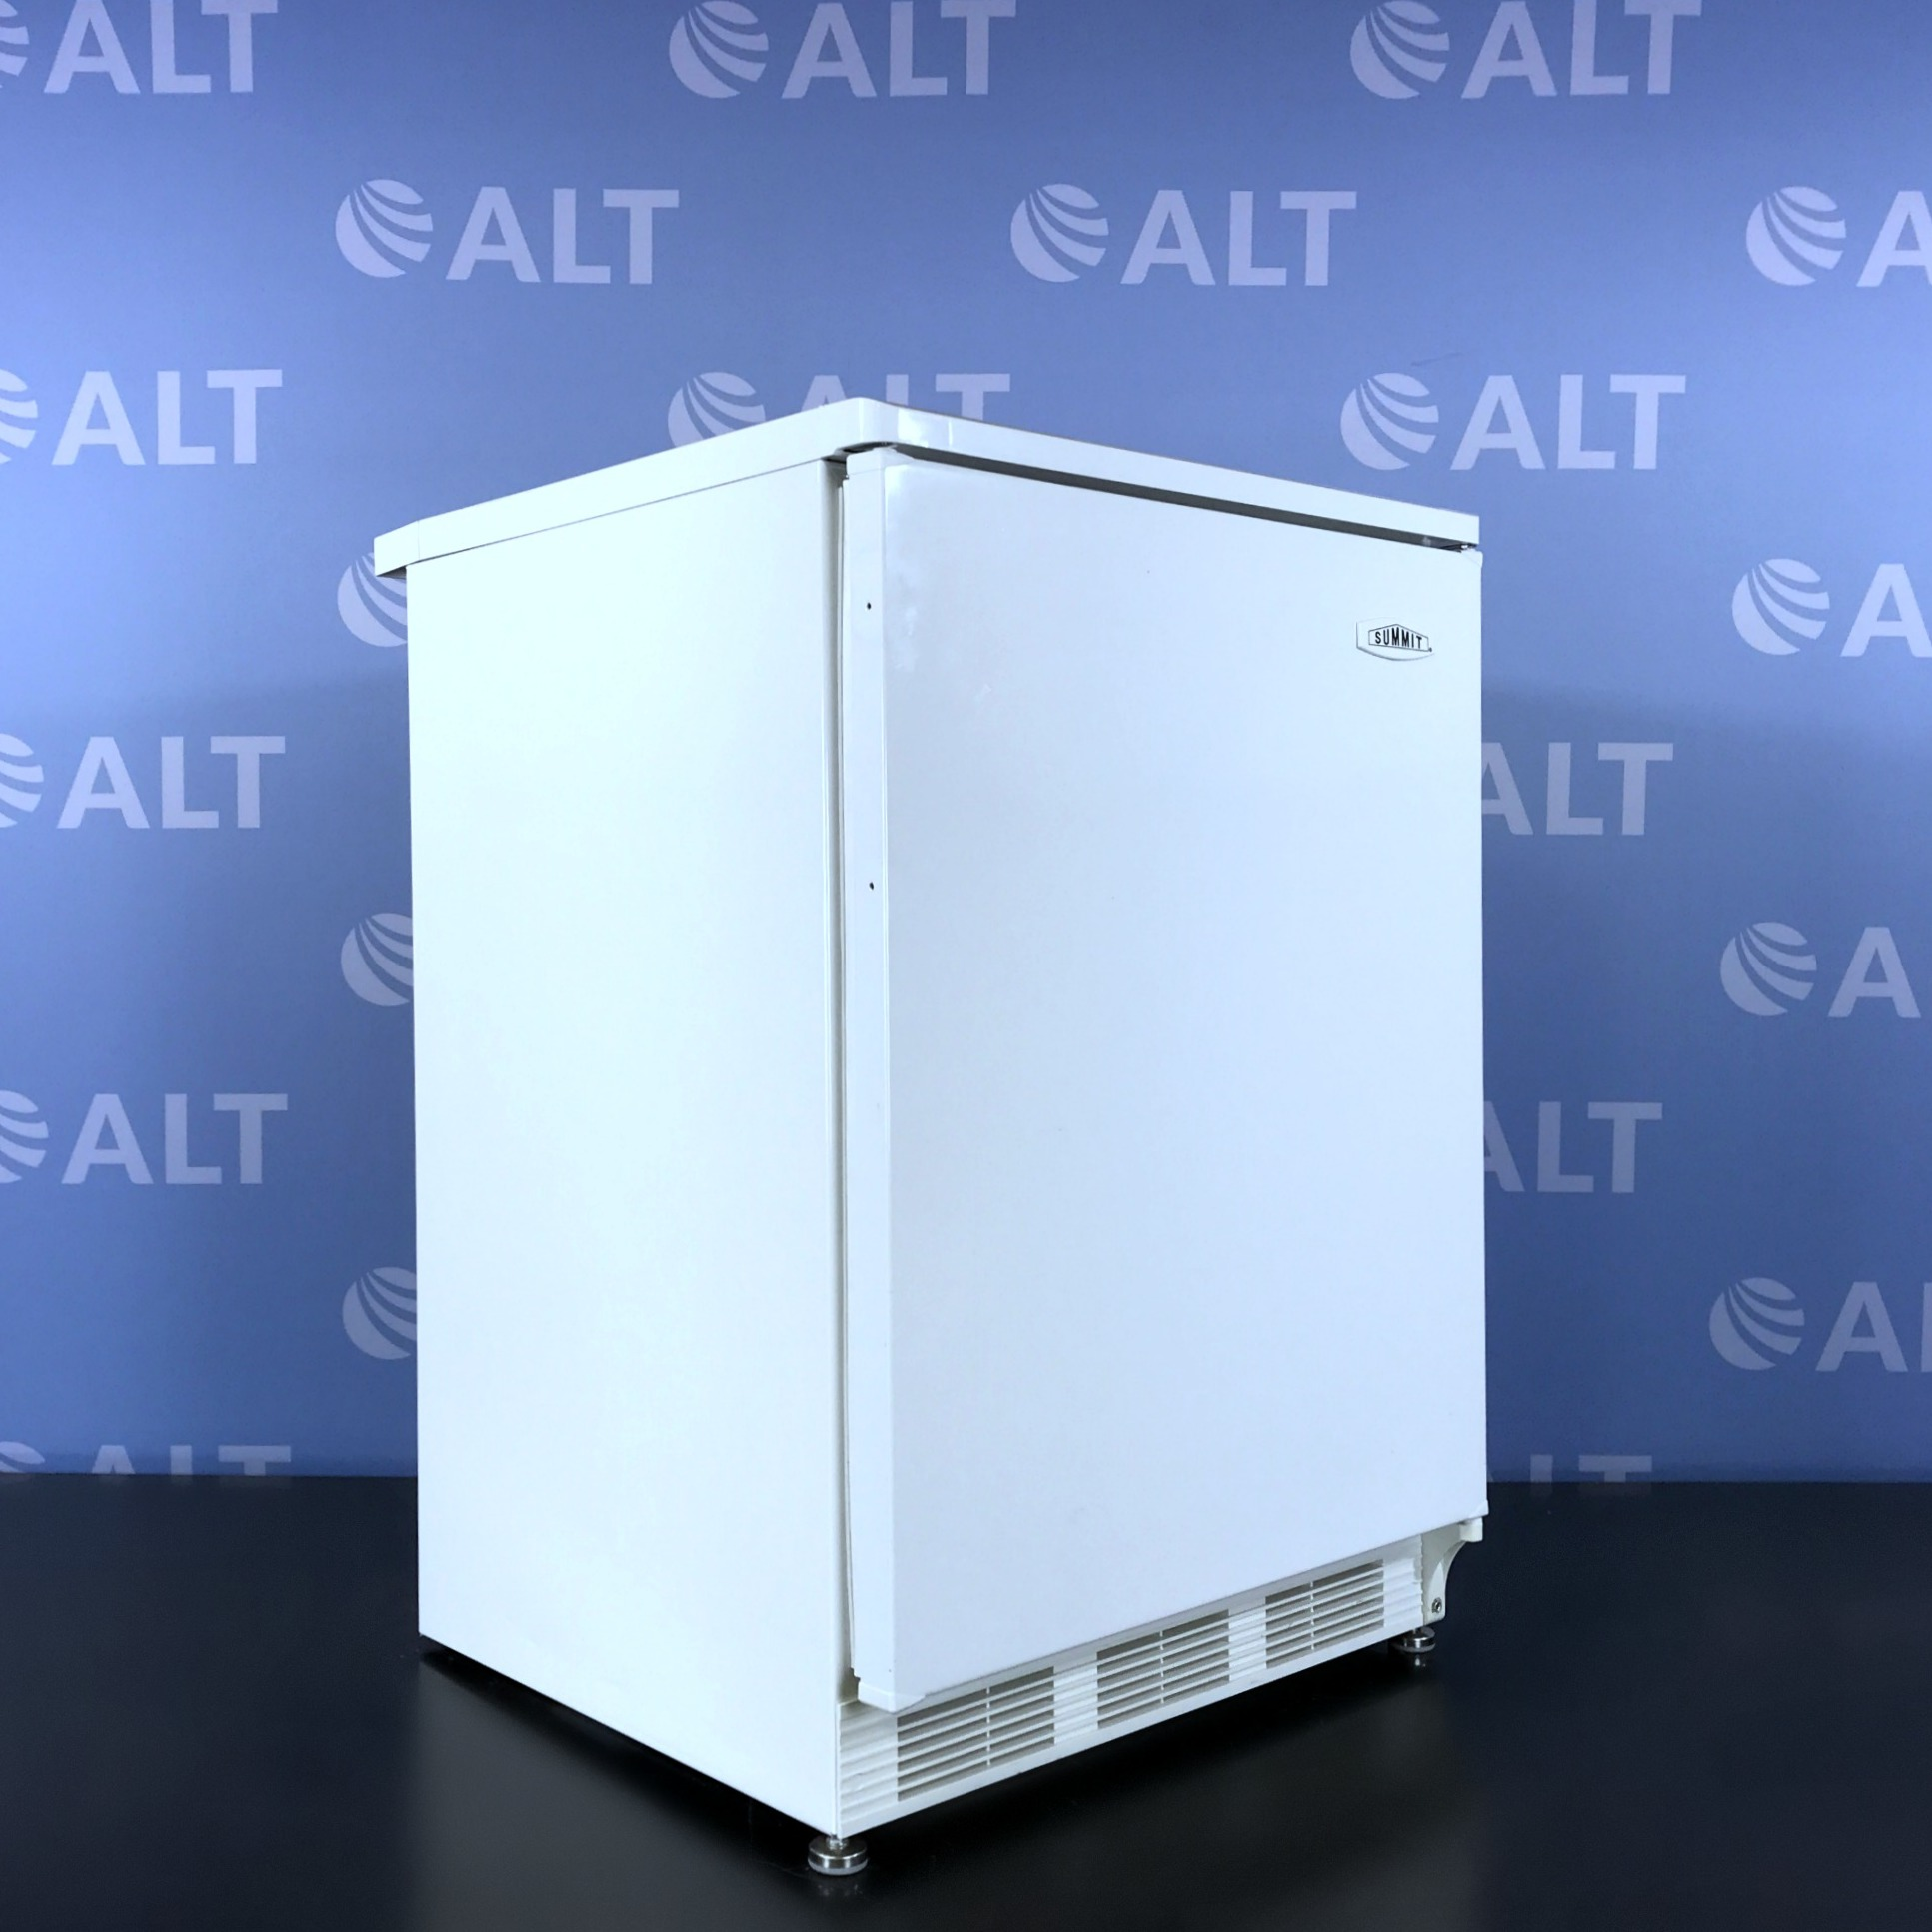 Summit FF6 - Accucold Medical Undercounter Refrigerator Image